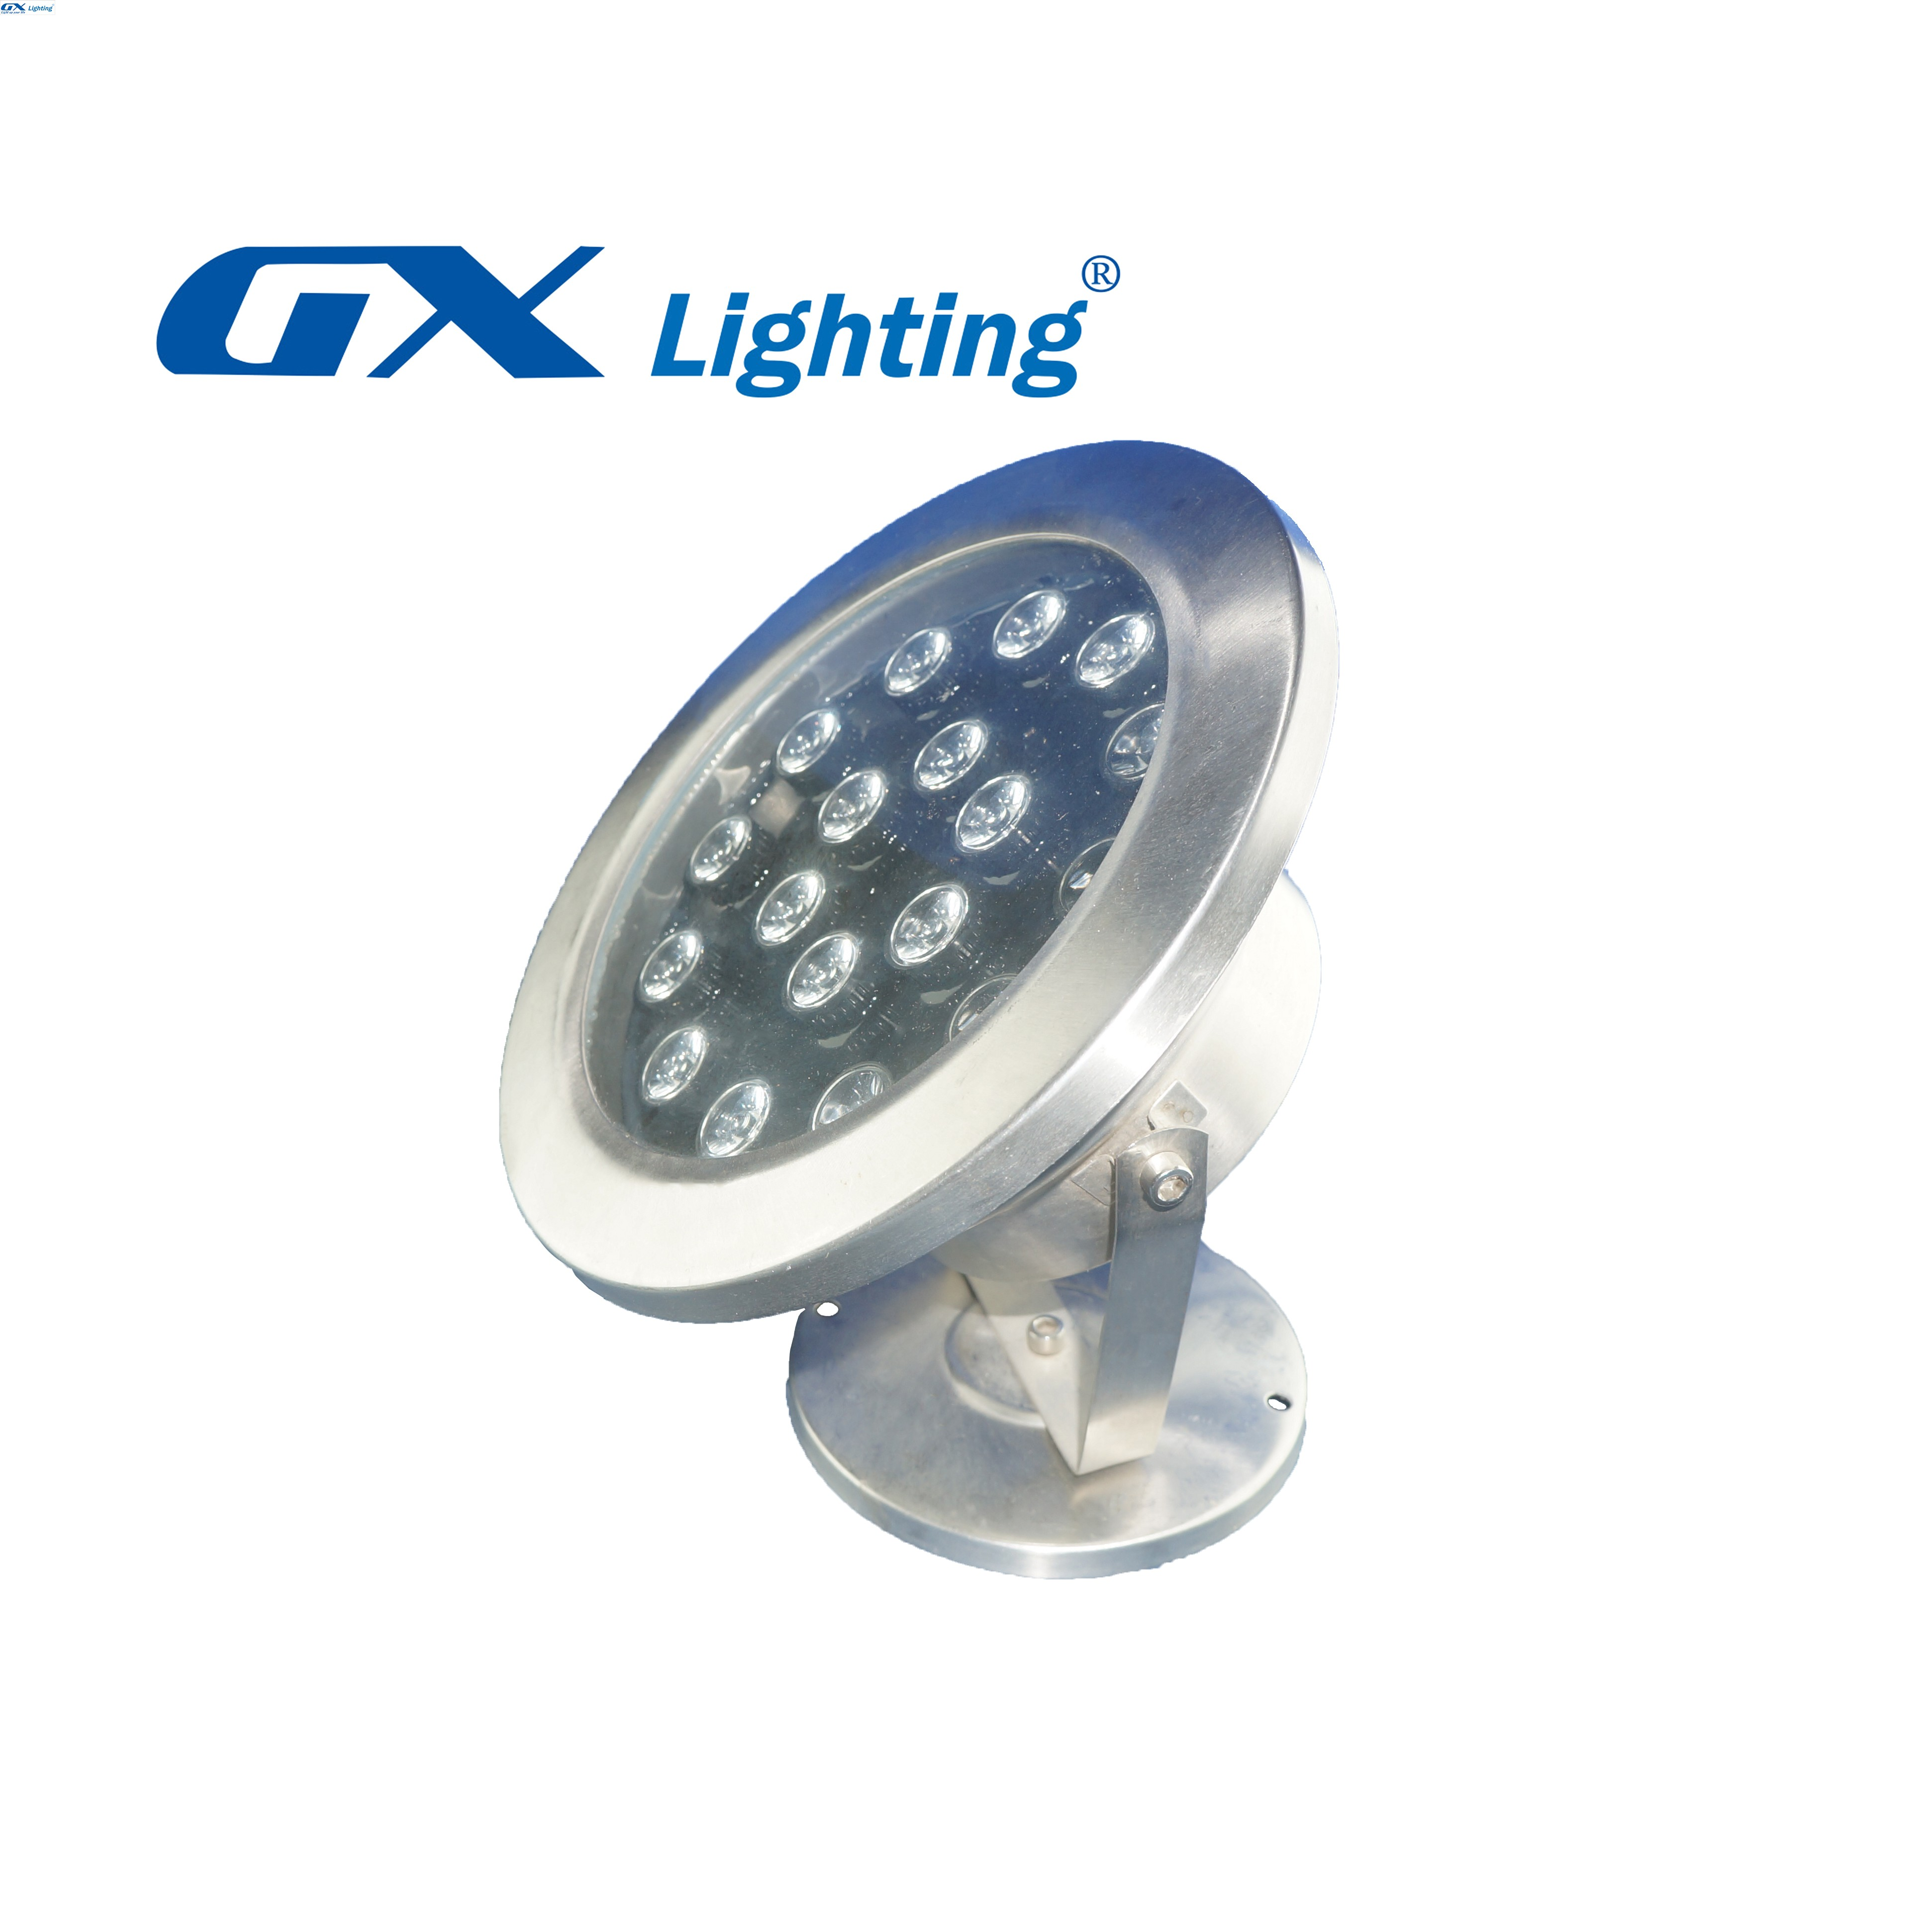 den-led-am-nuoc-gx-lighting-sdd08-18